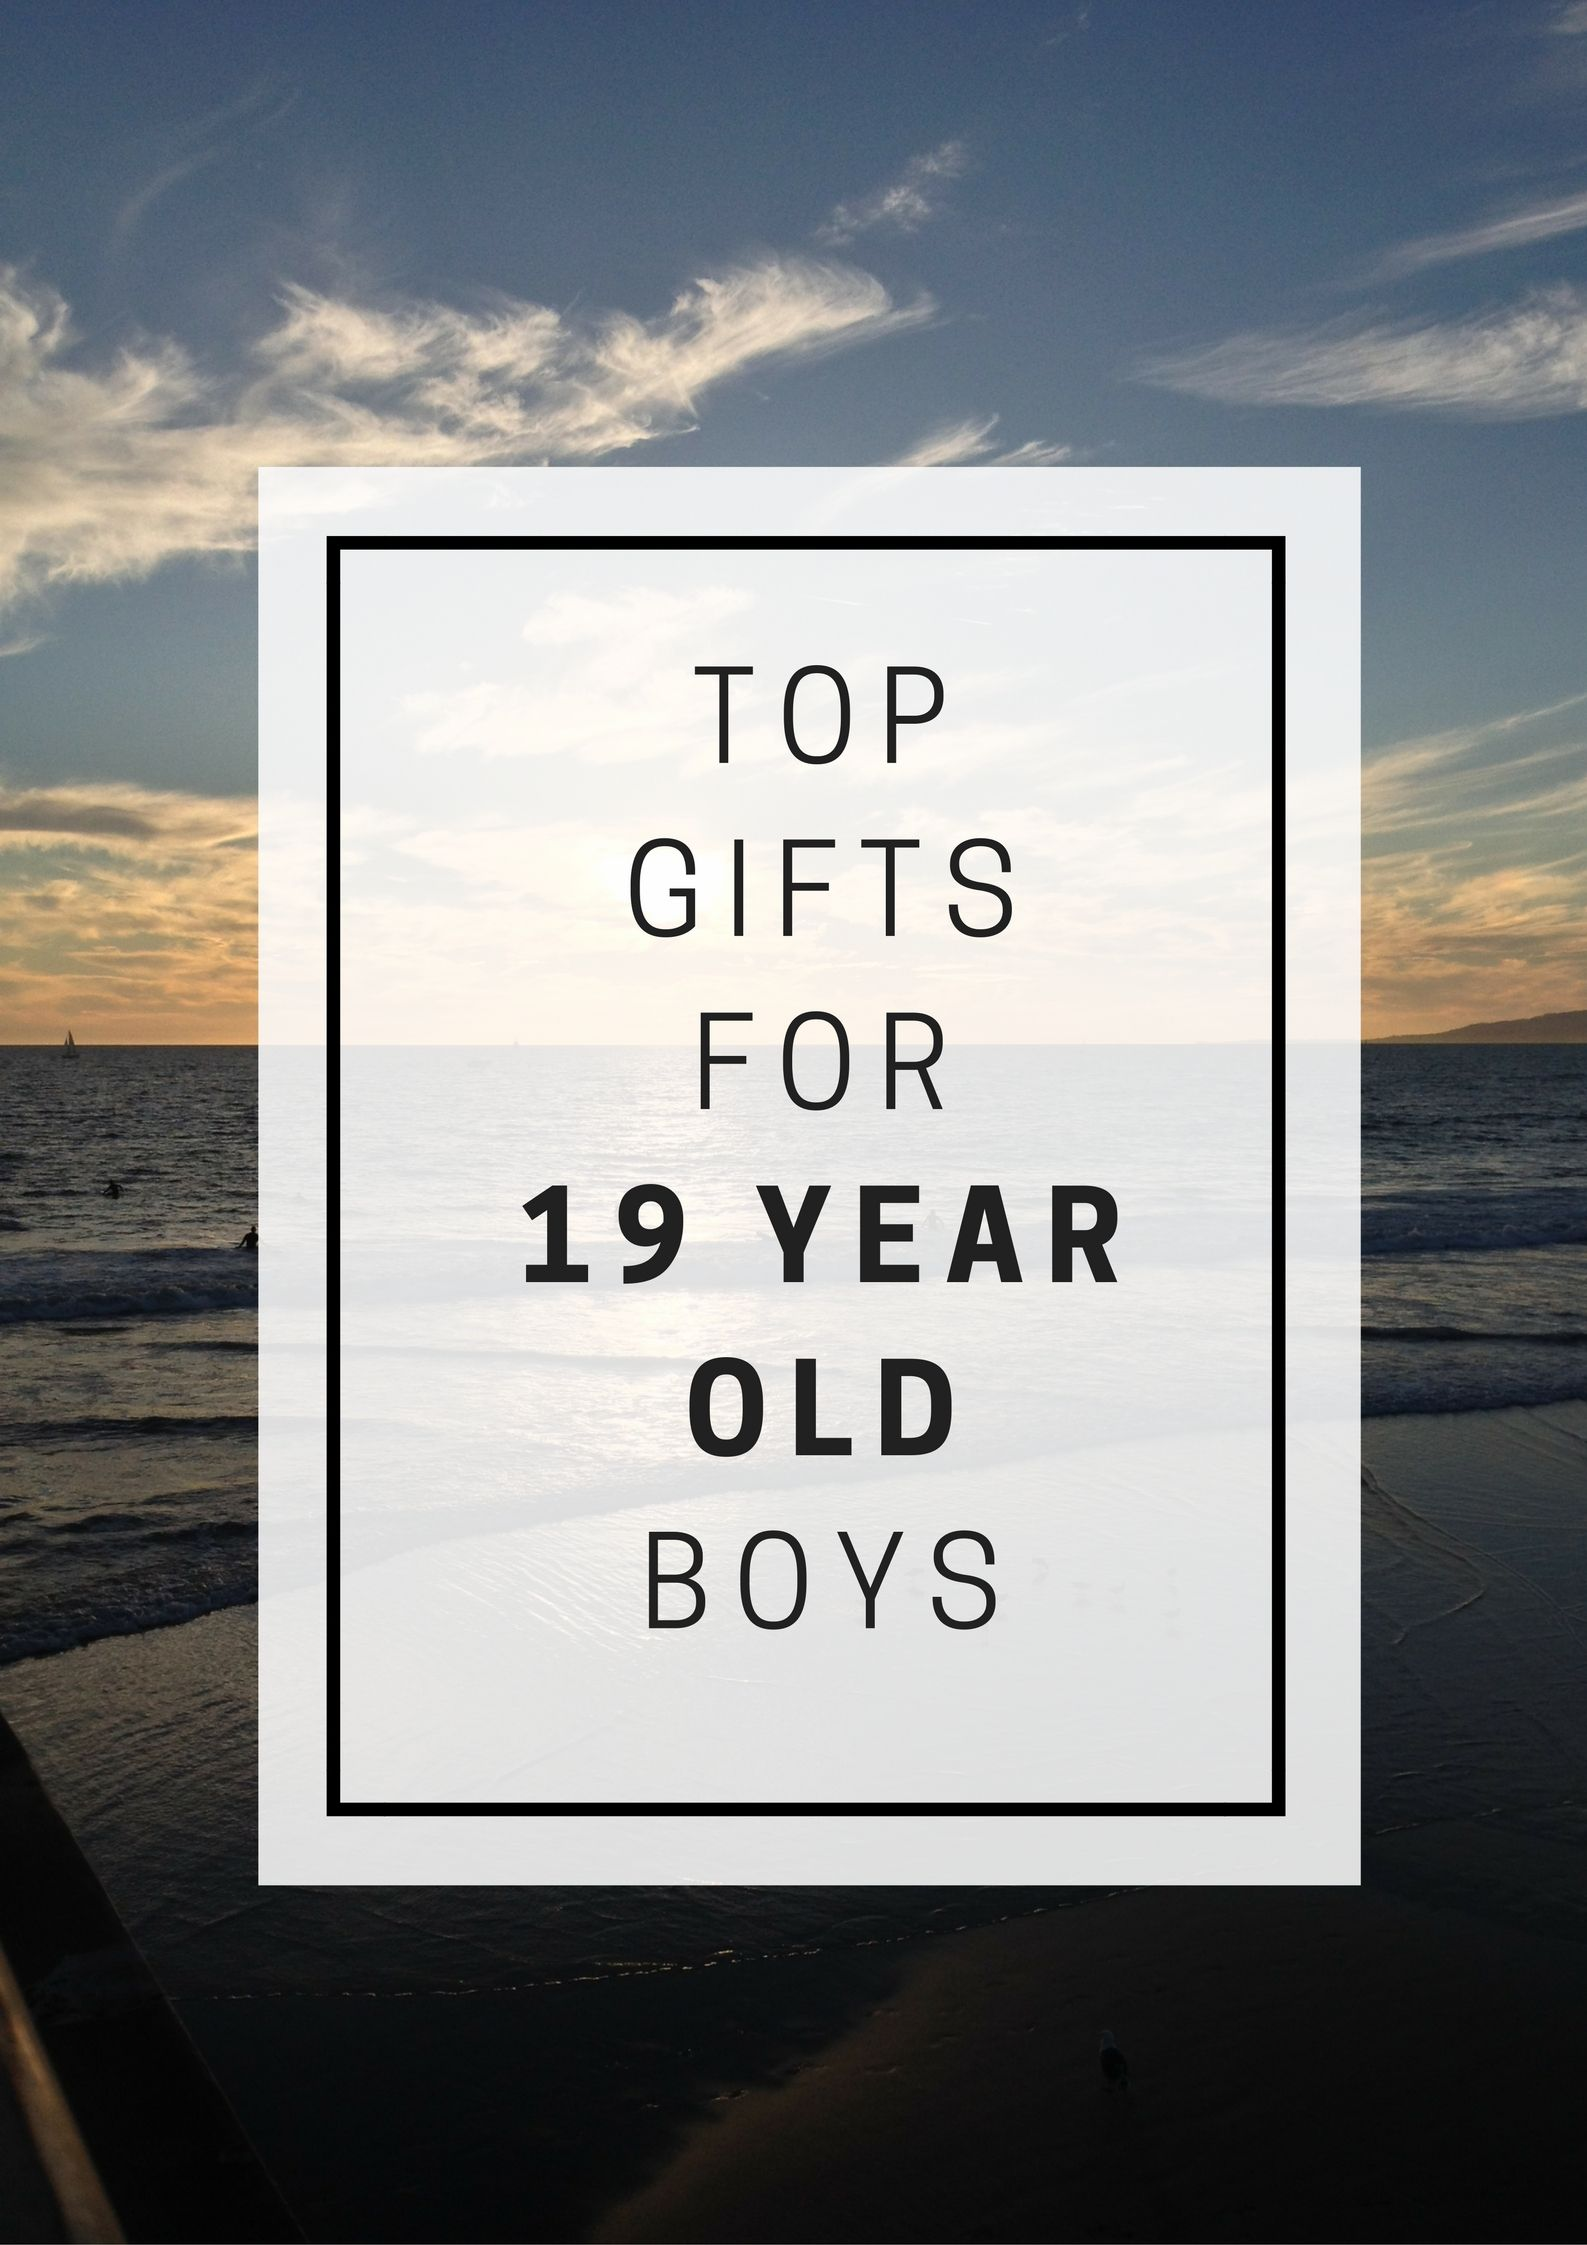 Favorite Top Gifts For 19 Year Old Boys Favoritetopgifts